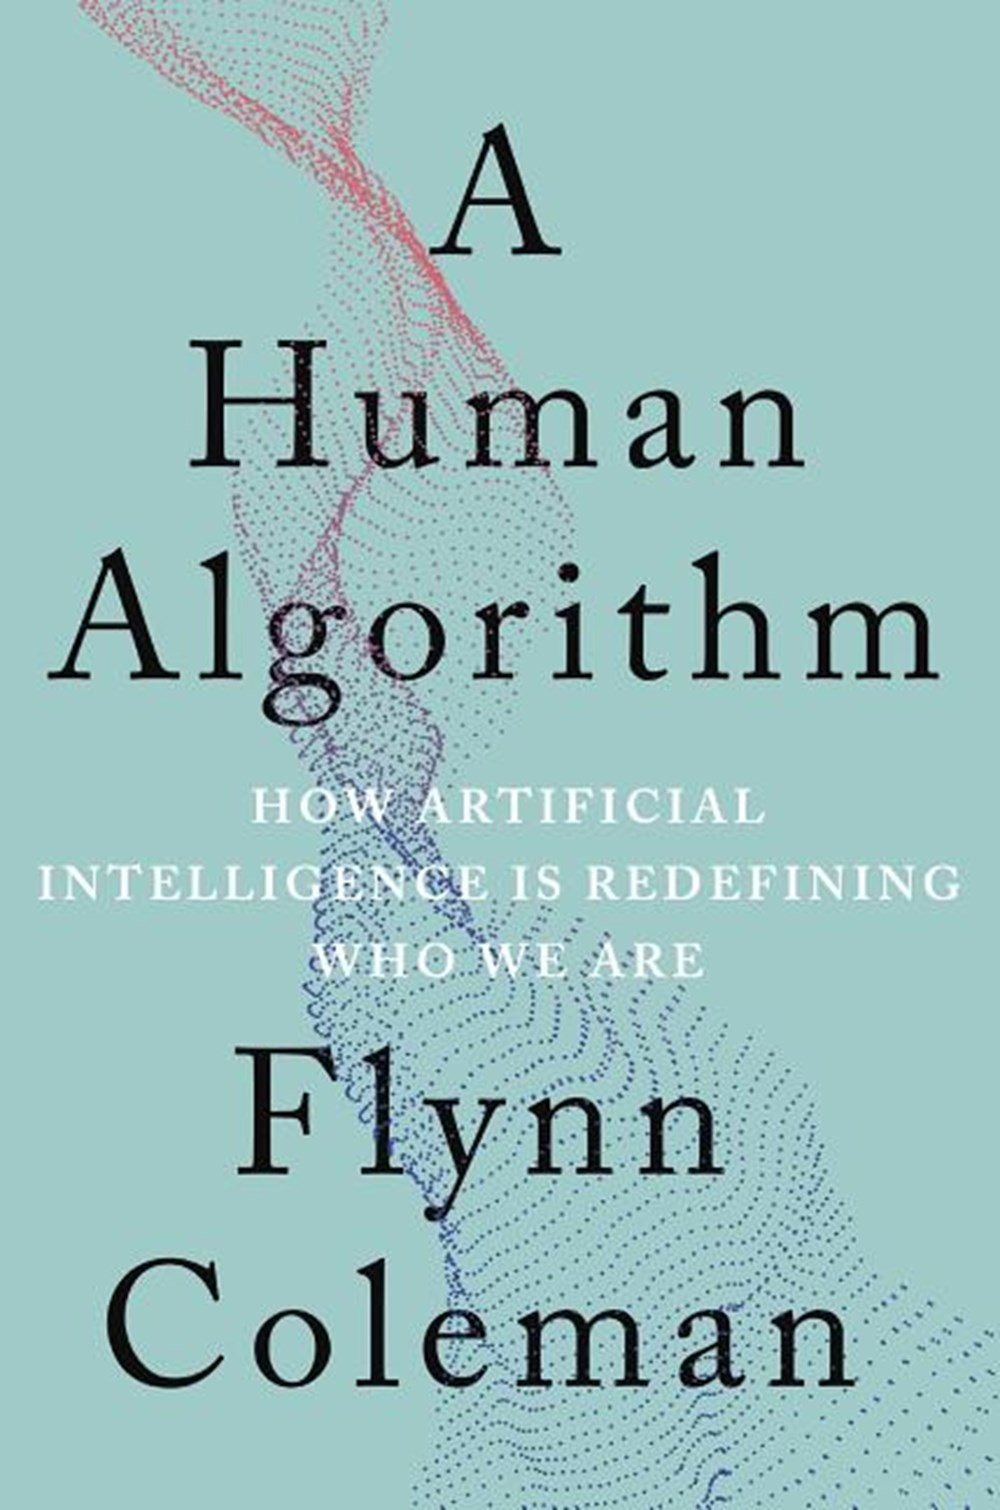 Human Algorithm How Artificial Intelligence Is Redefining Who We Are